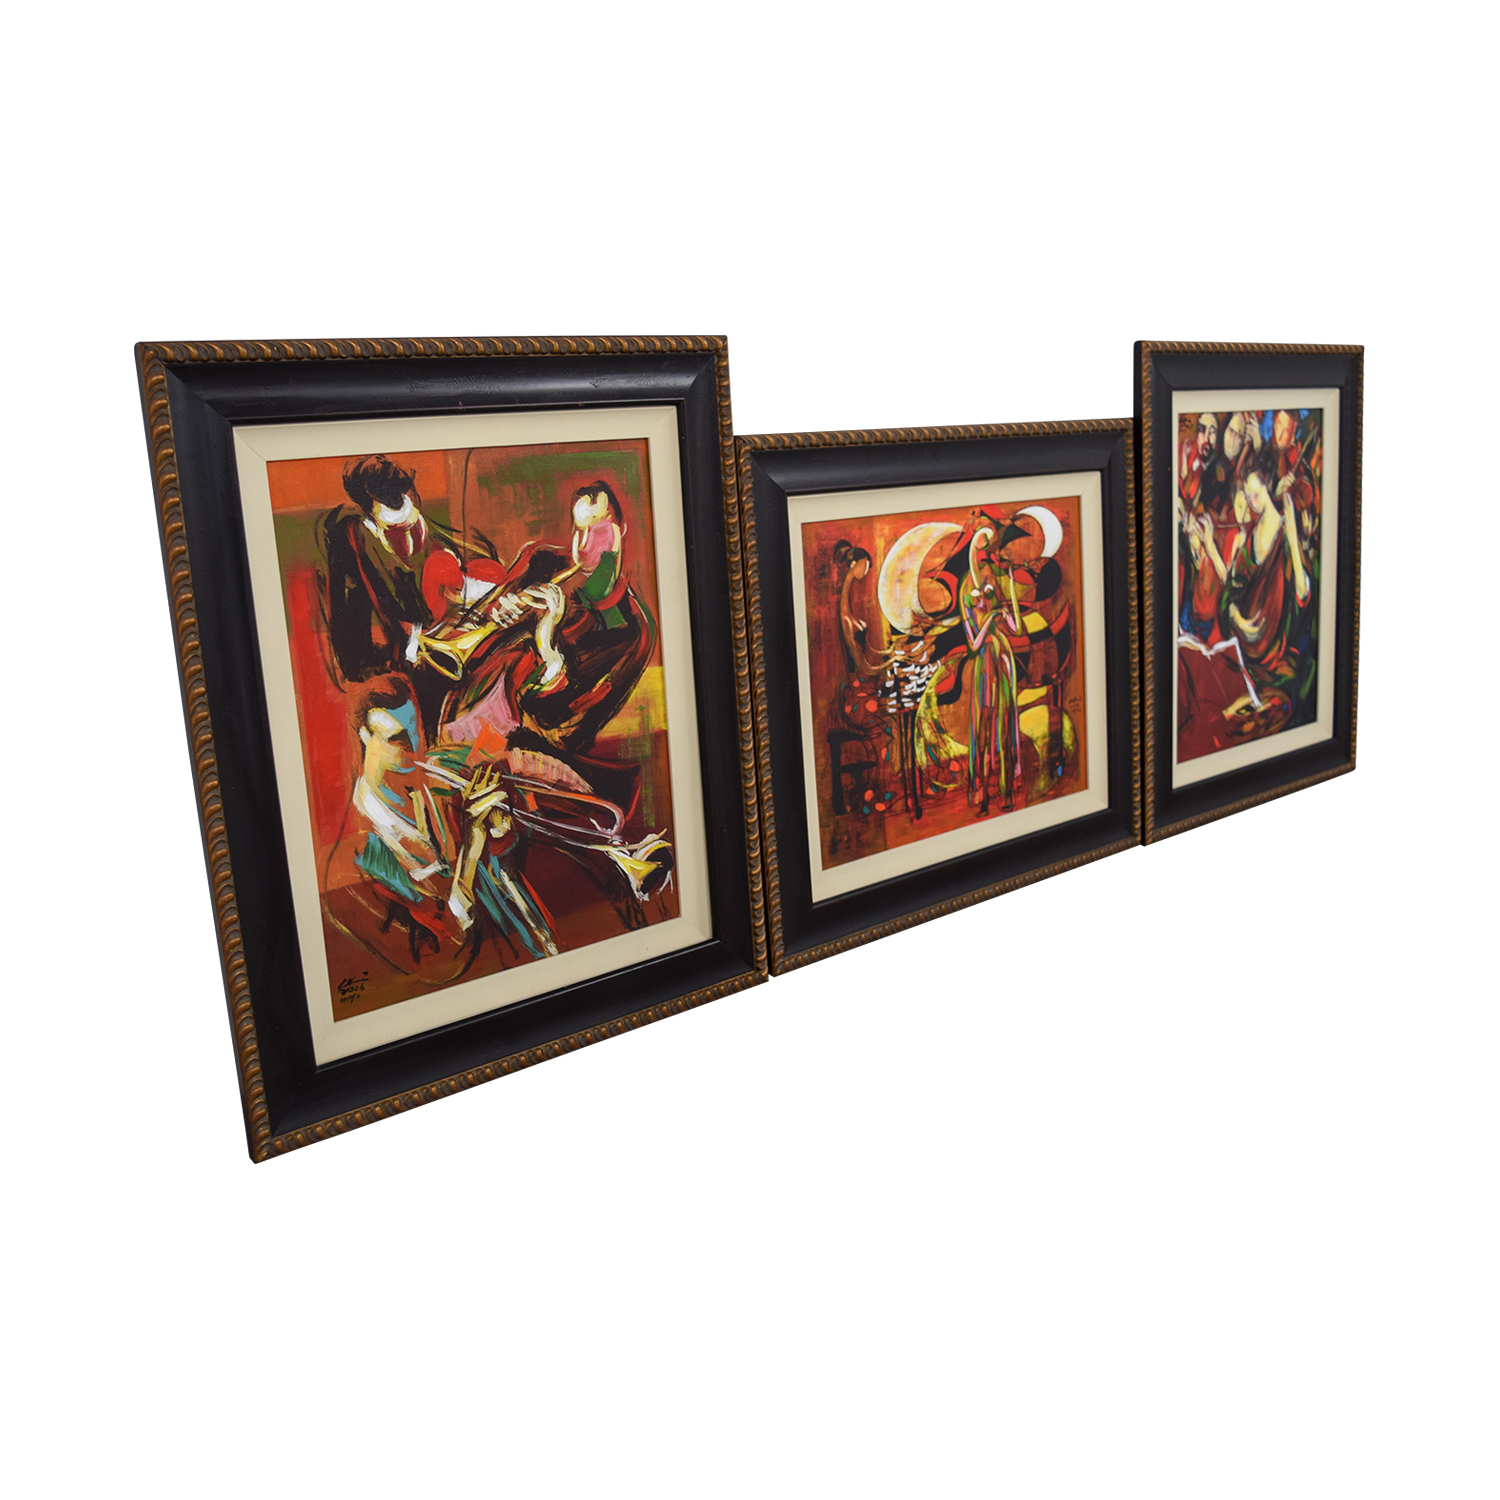 LiLi LiLi Giclee the Jazz Series Frames Art price